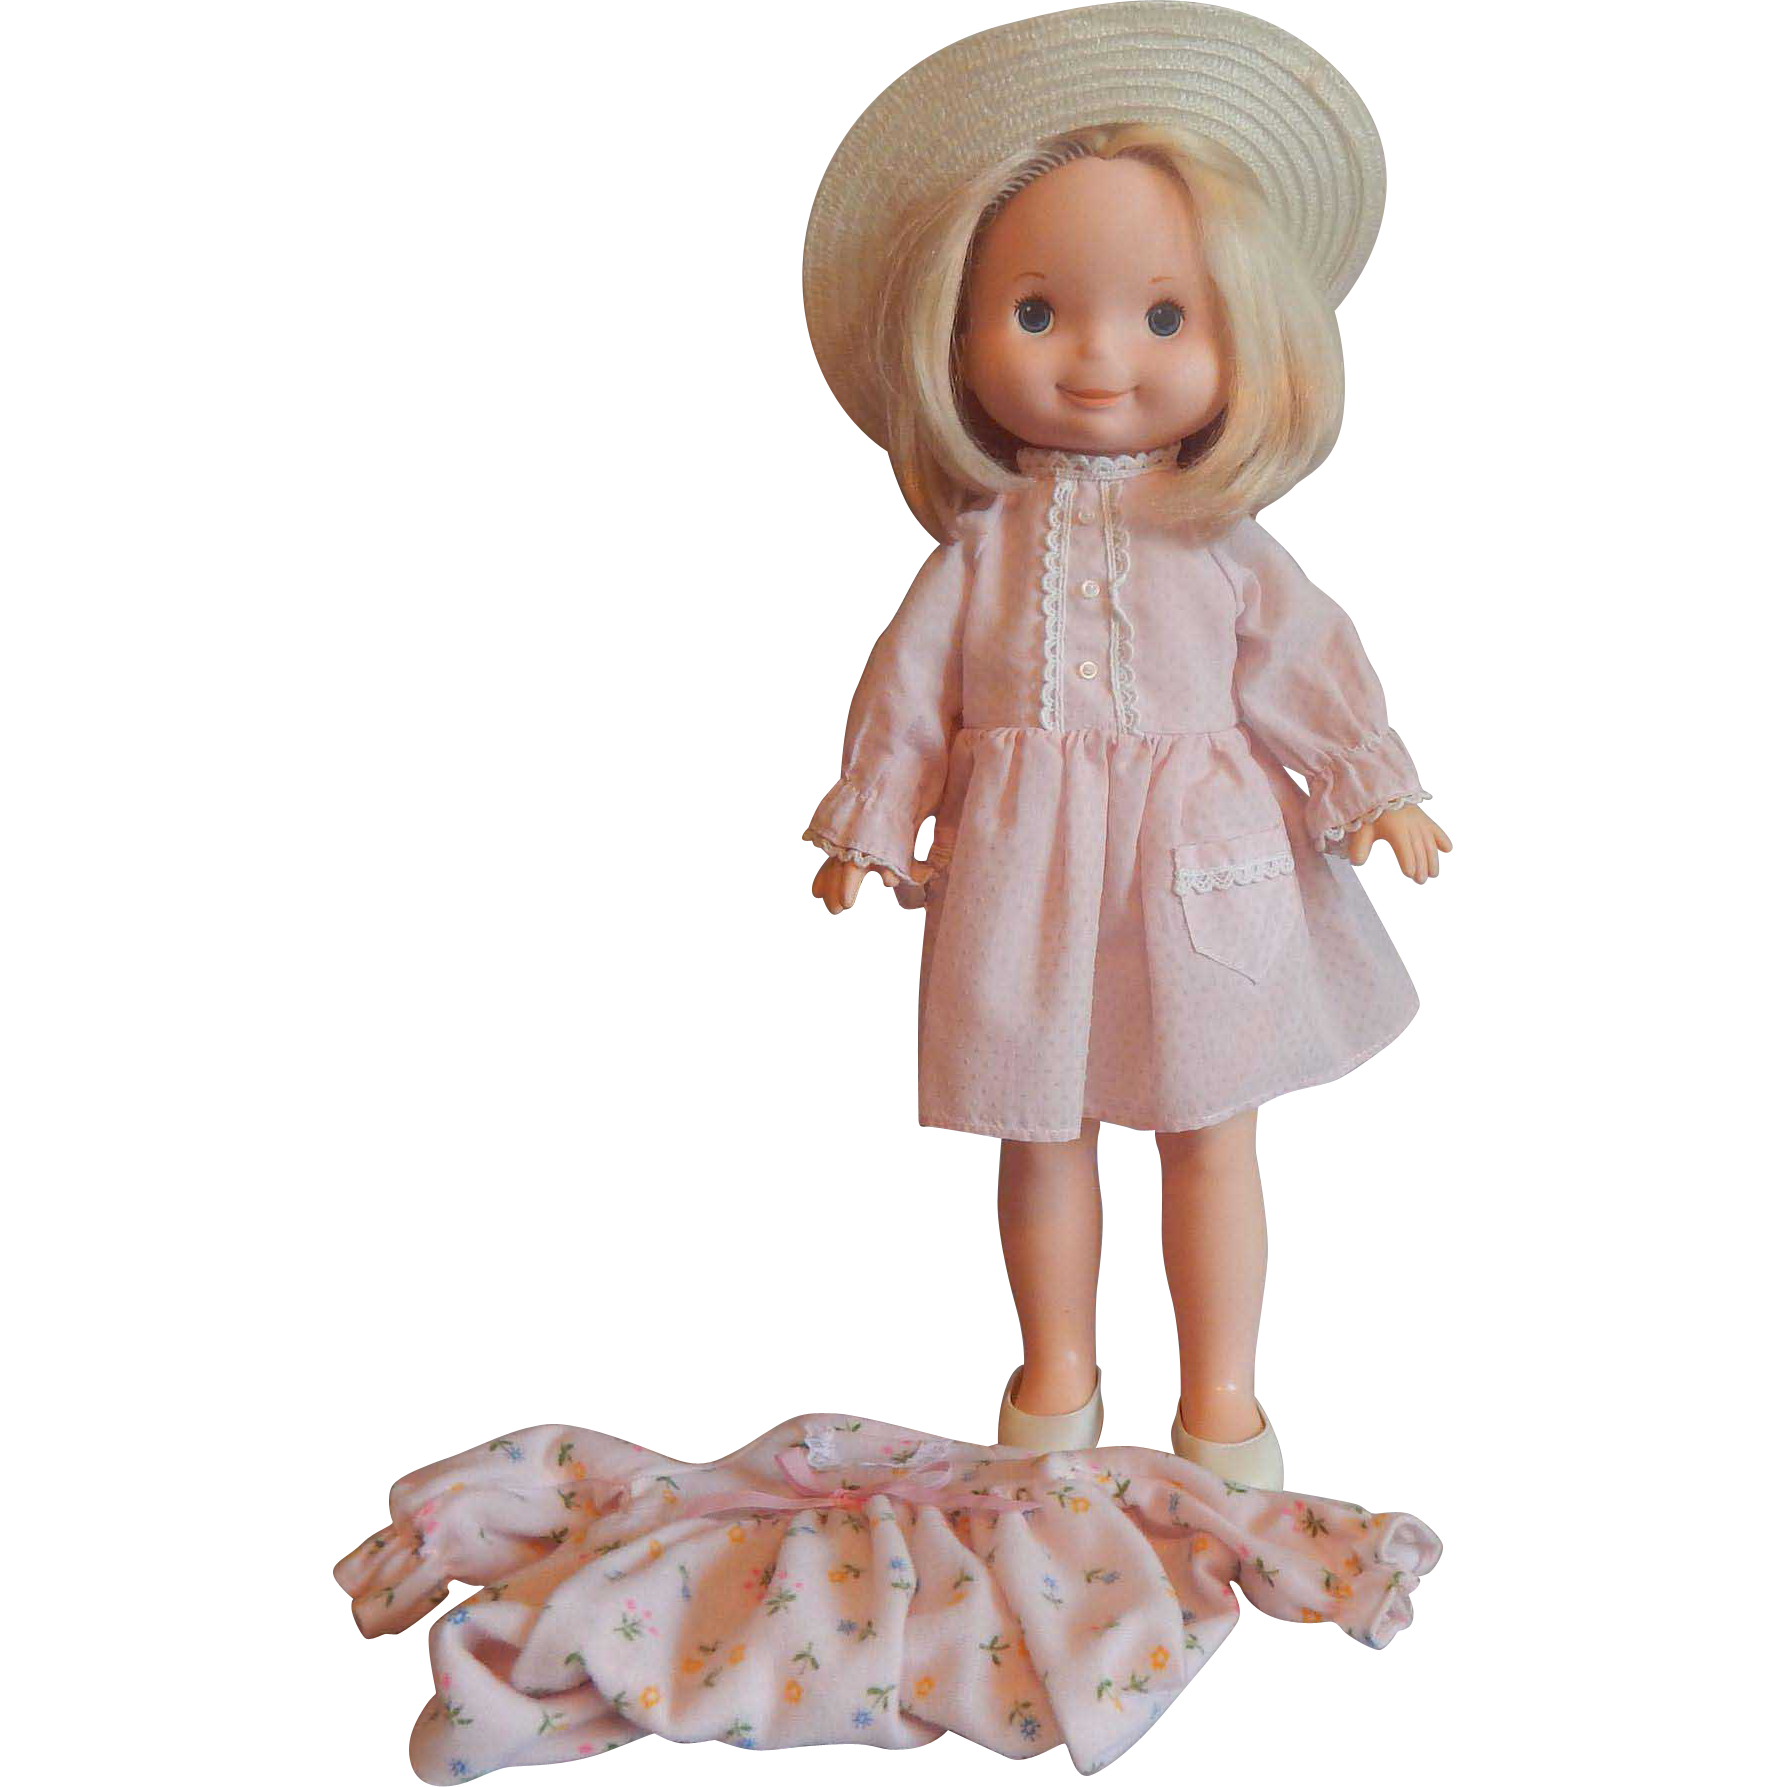 My Friend Mandy Doll by Mattel